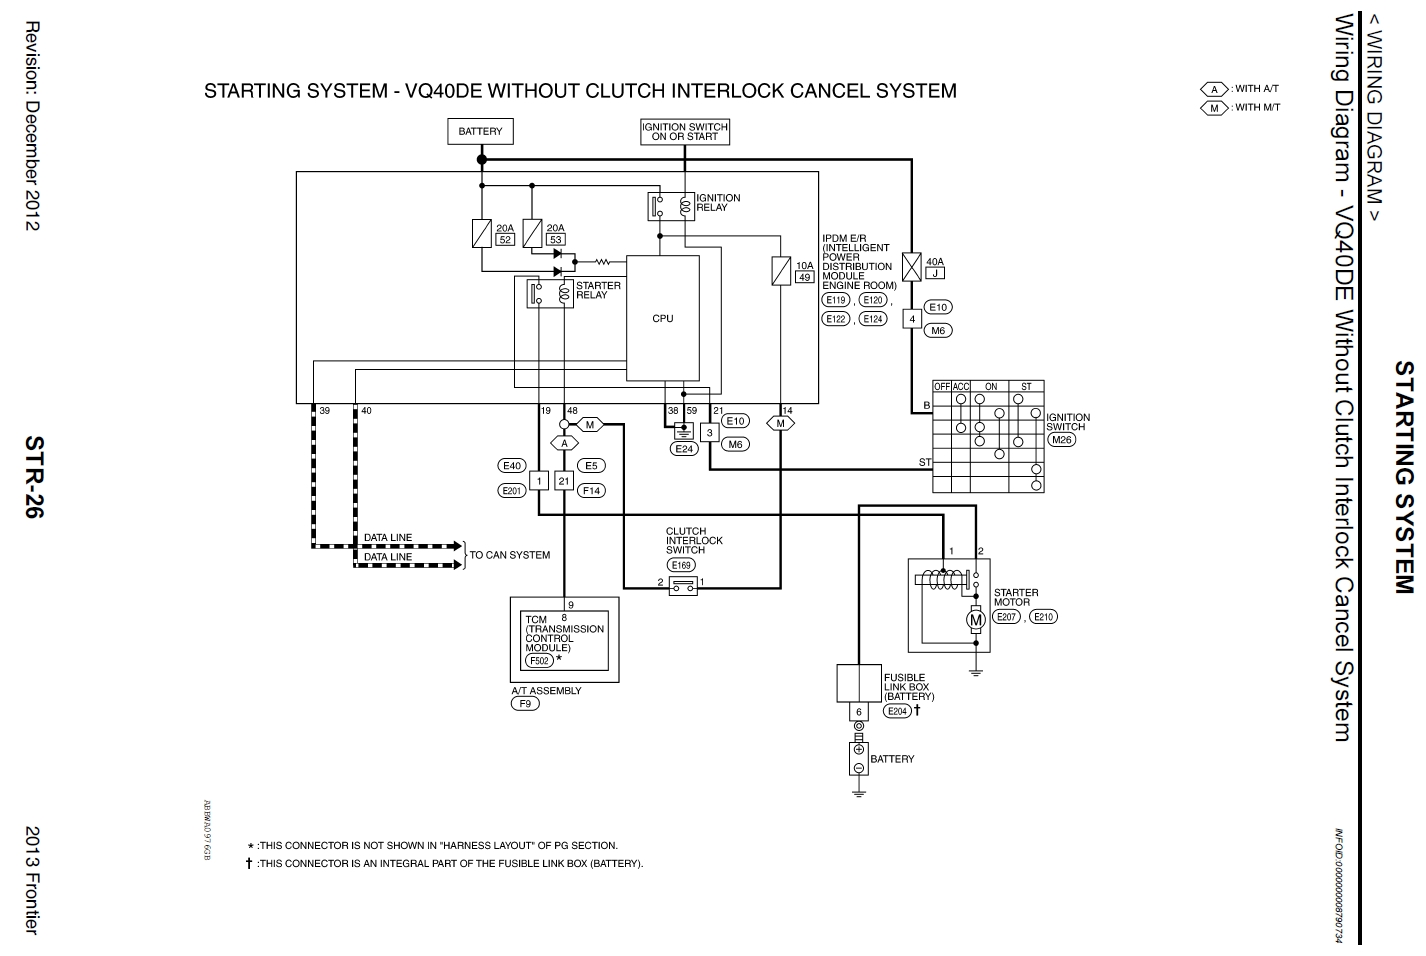 do_5569] 2013 nissan frontier stereo wiring diagram download diagram  sulf caba opein mohammedshrine librar wiring 101